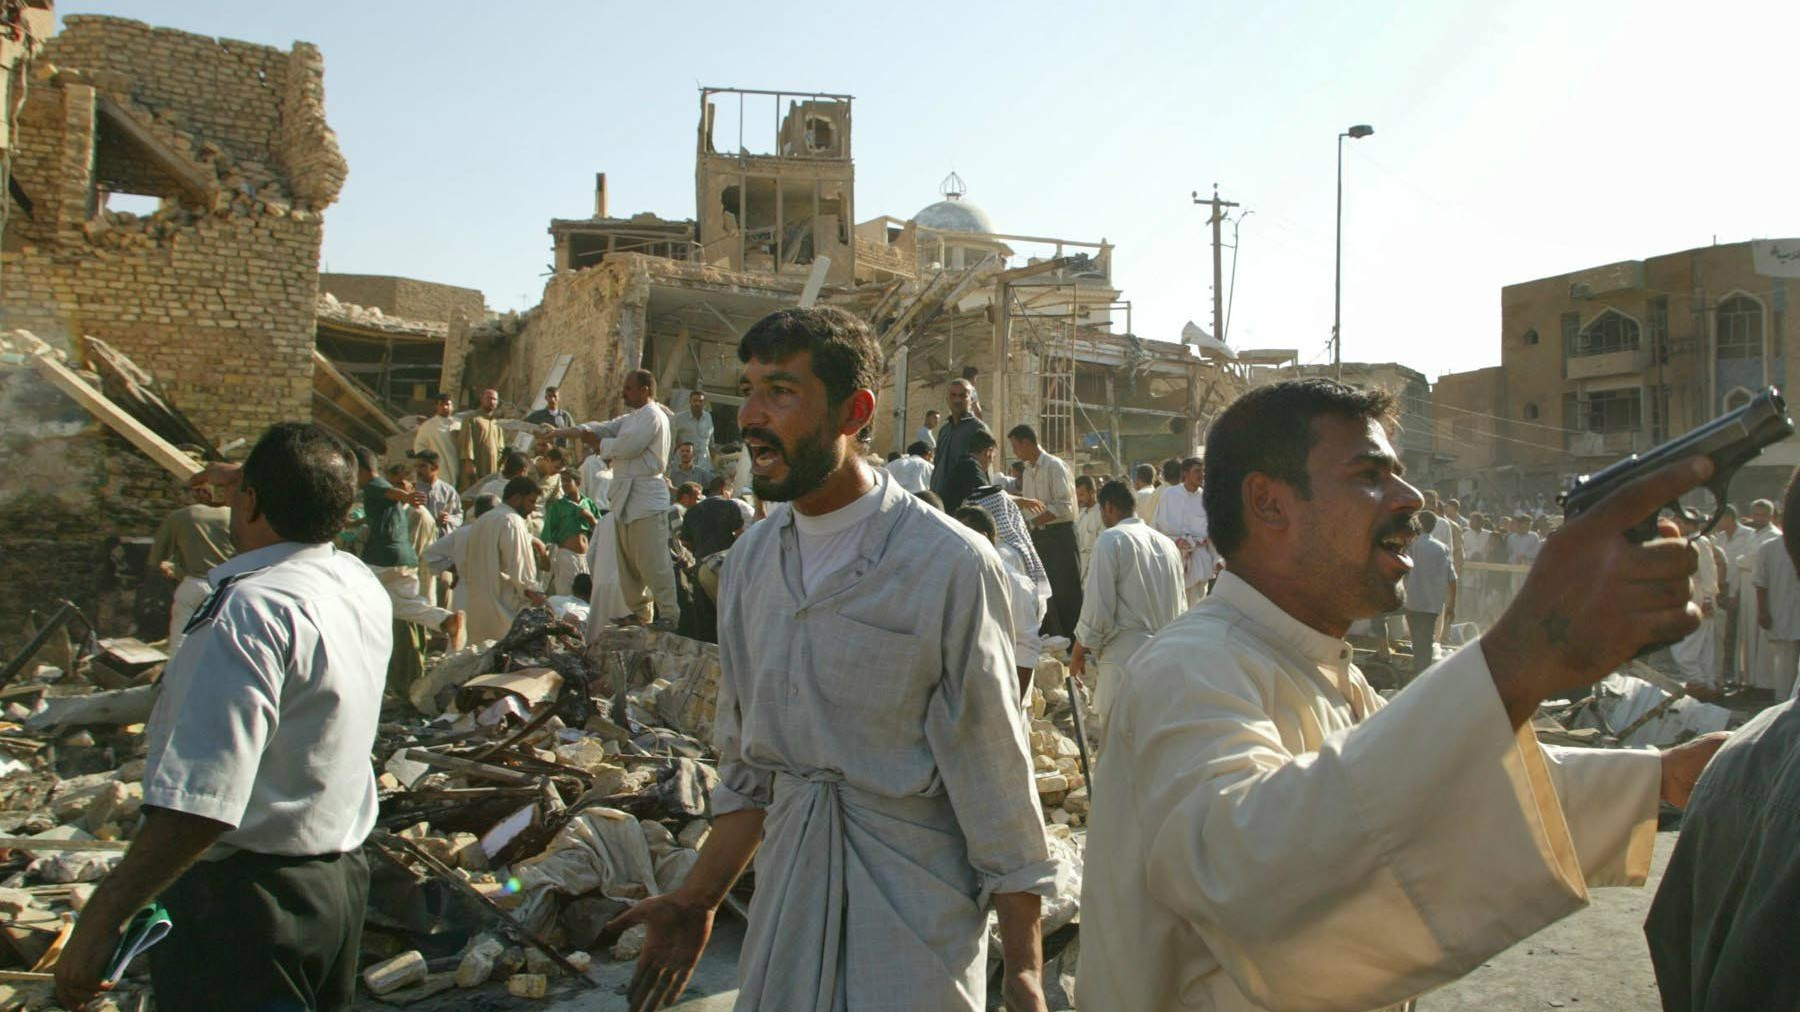 Iraqis try to keep back family members of the dead and injured and other onlookers as people dig through the rubble left after a car bomb exploded next to Imam Ali shrine in Najaf, Iraq killing at least 75 and wounding 150 others Friday August 29, 2003. The car bomb killed Ayatollah Mohammed Baqir al-Hakim, one of the most respected Shiite Muslim clerics in Iraq. (AP Photo/David Guttenfelder)